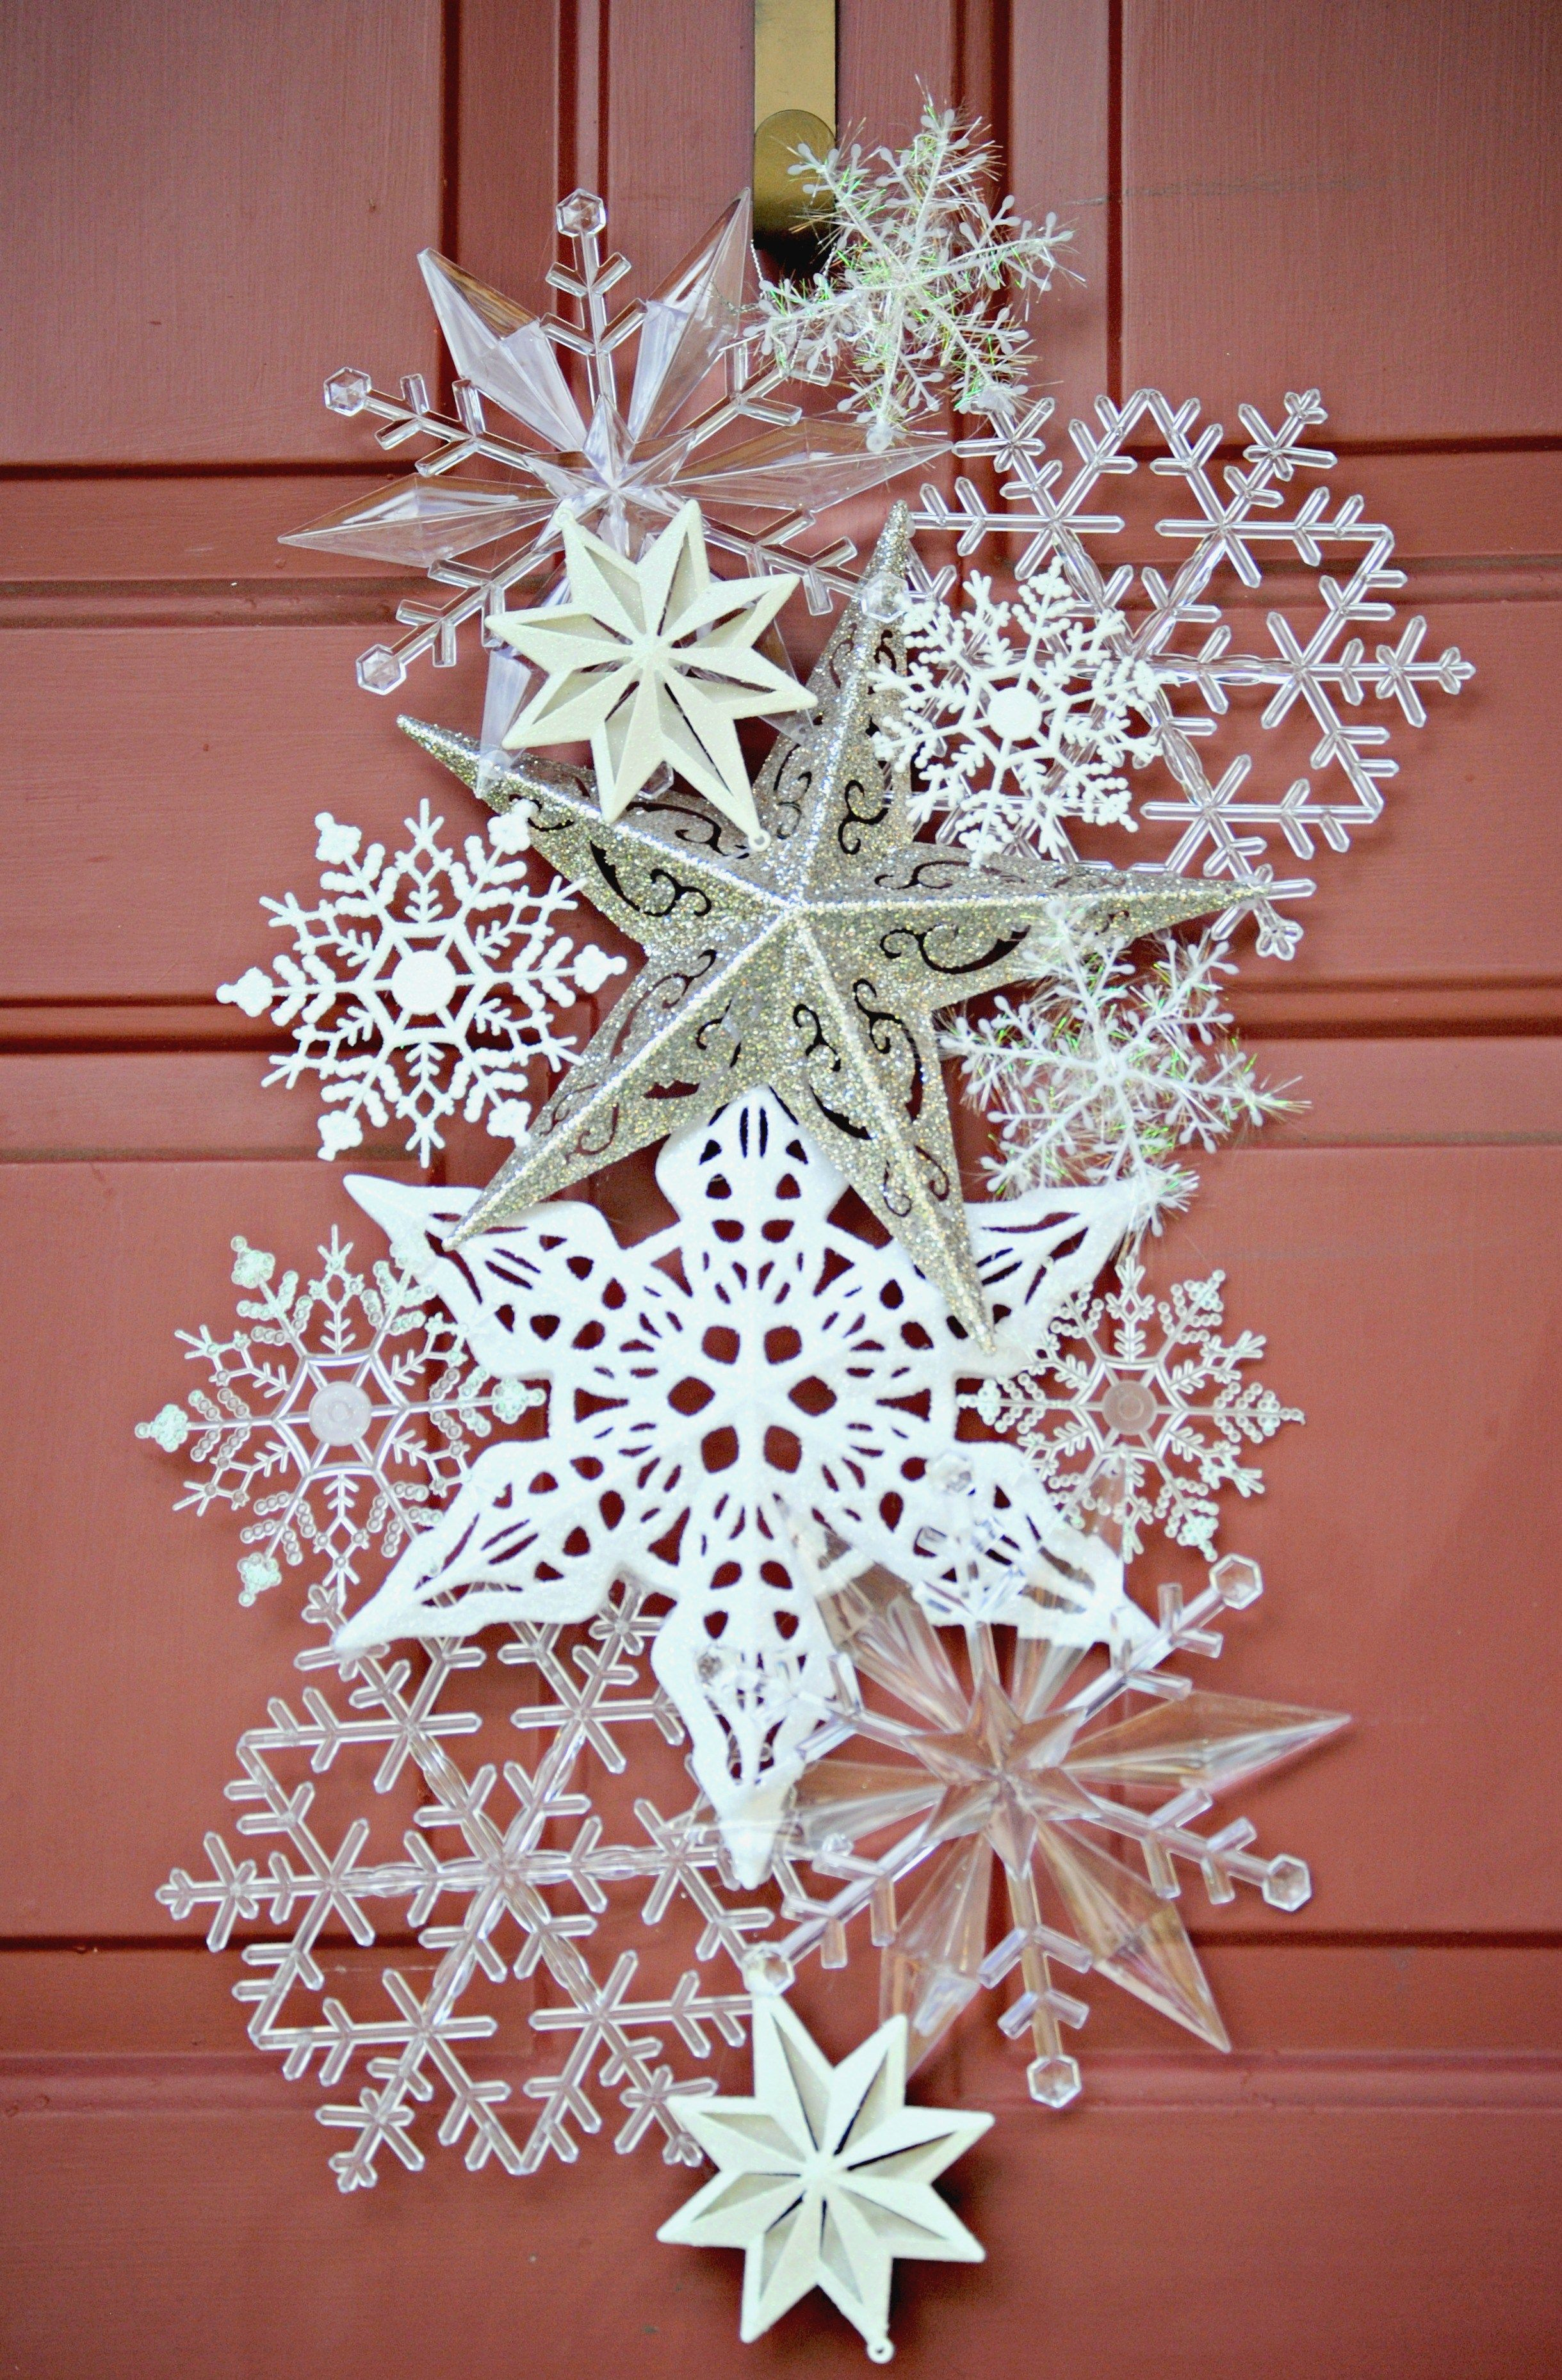 diamond inch outdoor lighted snowflake decor decoration ropelight led decorations christmas white pure